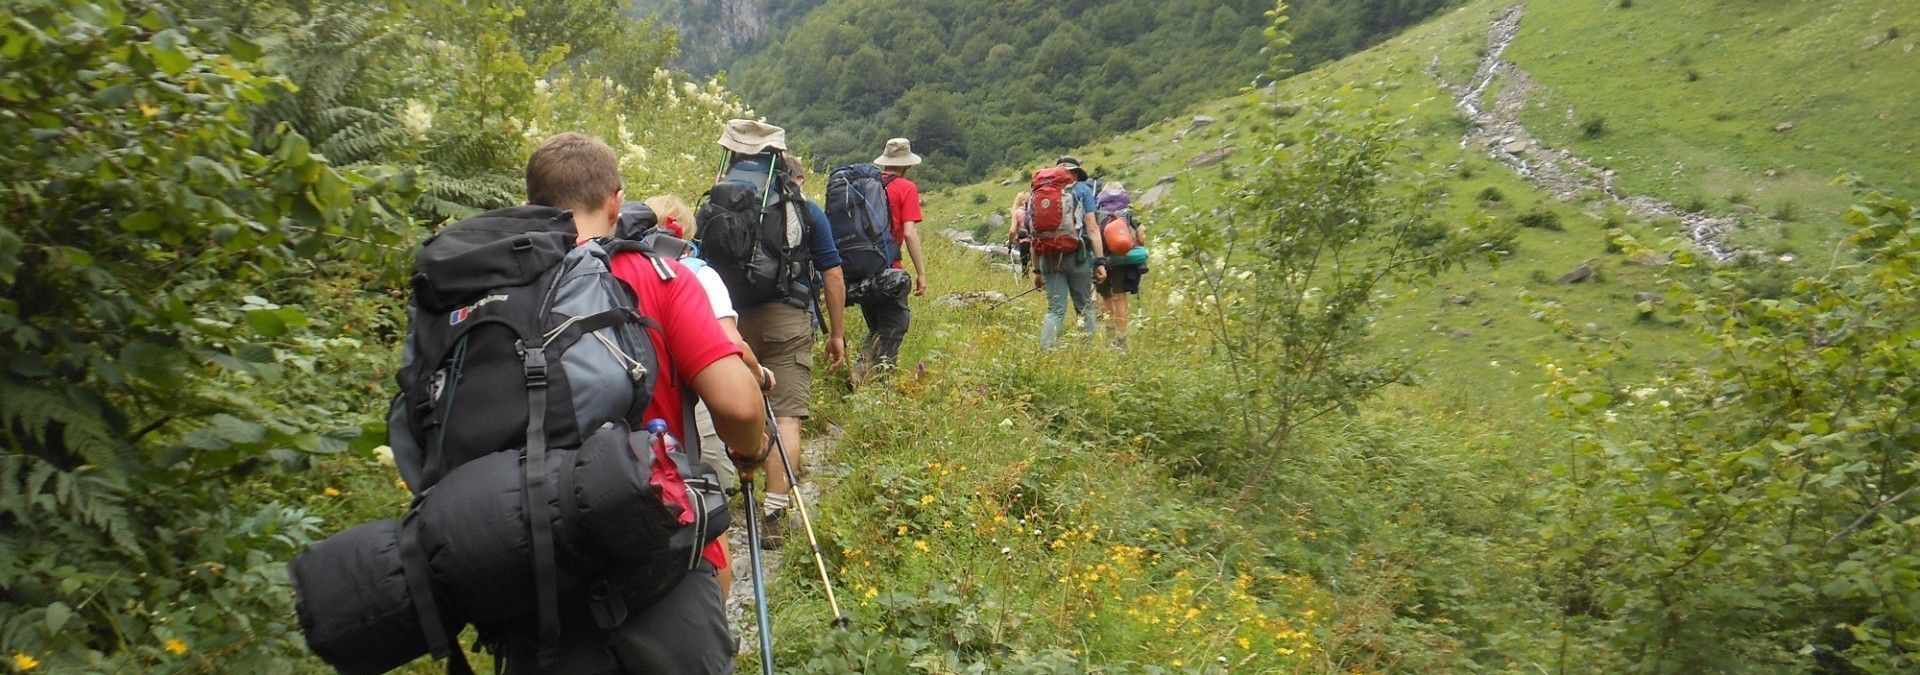 Trekking_with_Poles_Freedom_Trail.JPG